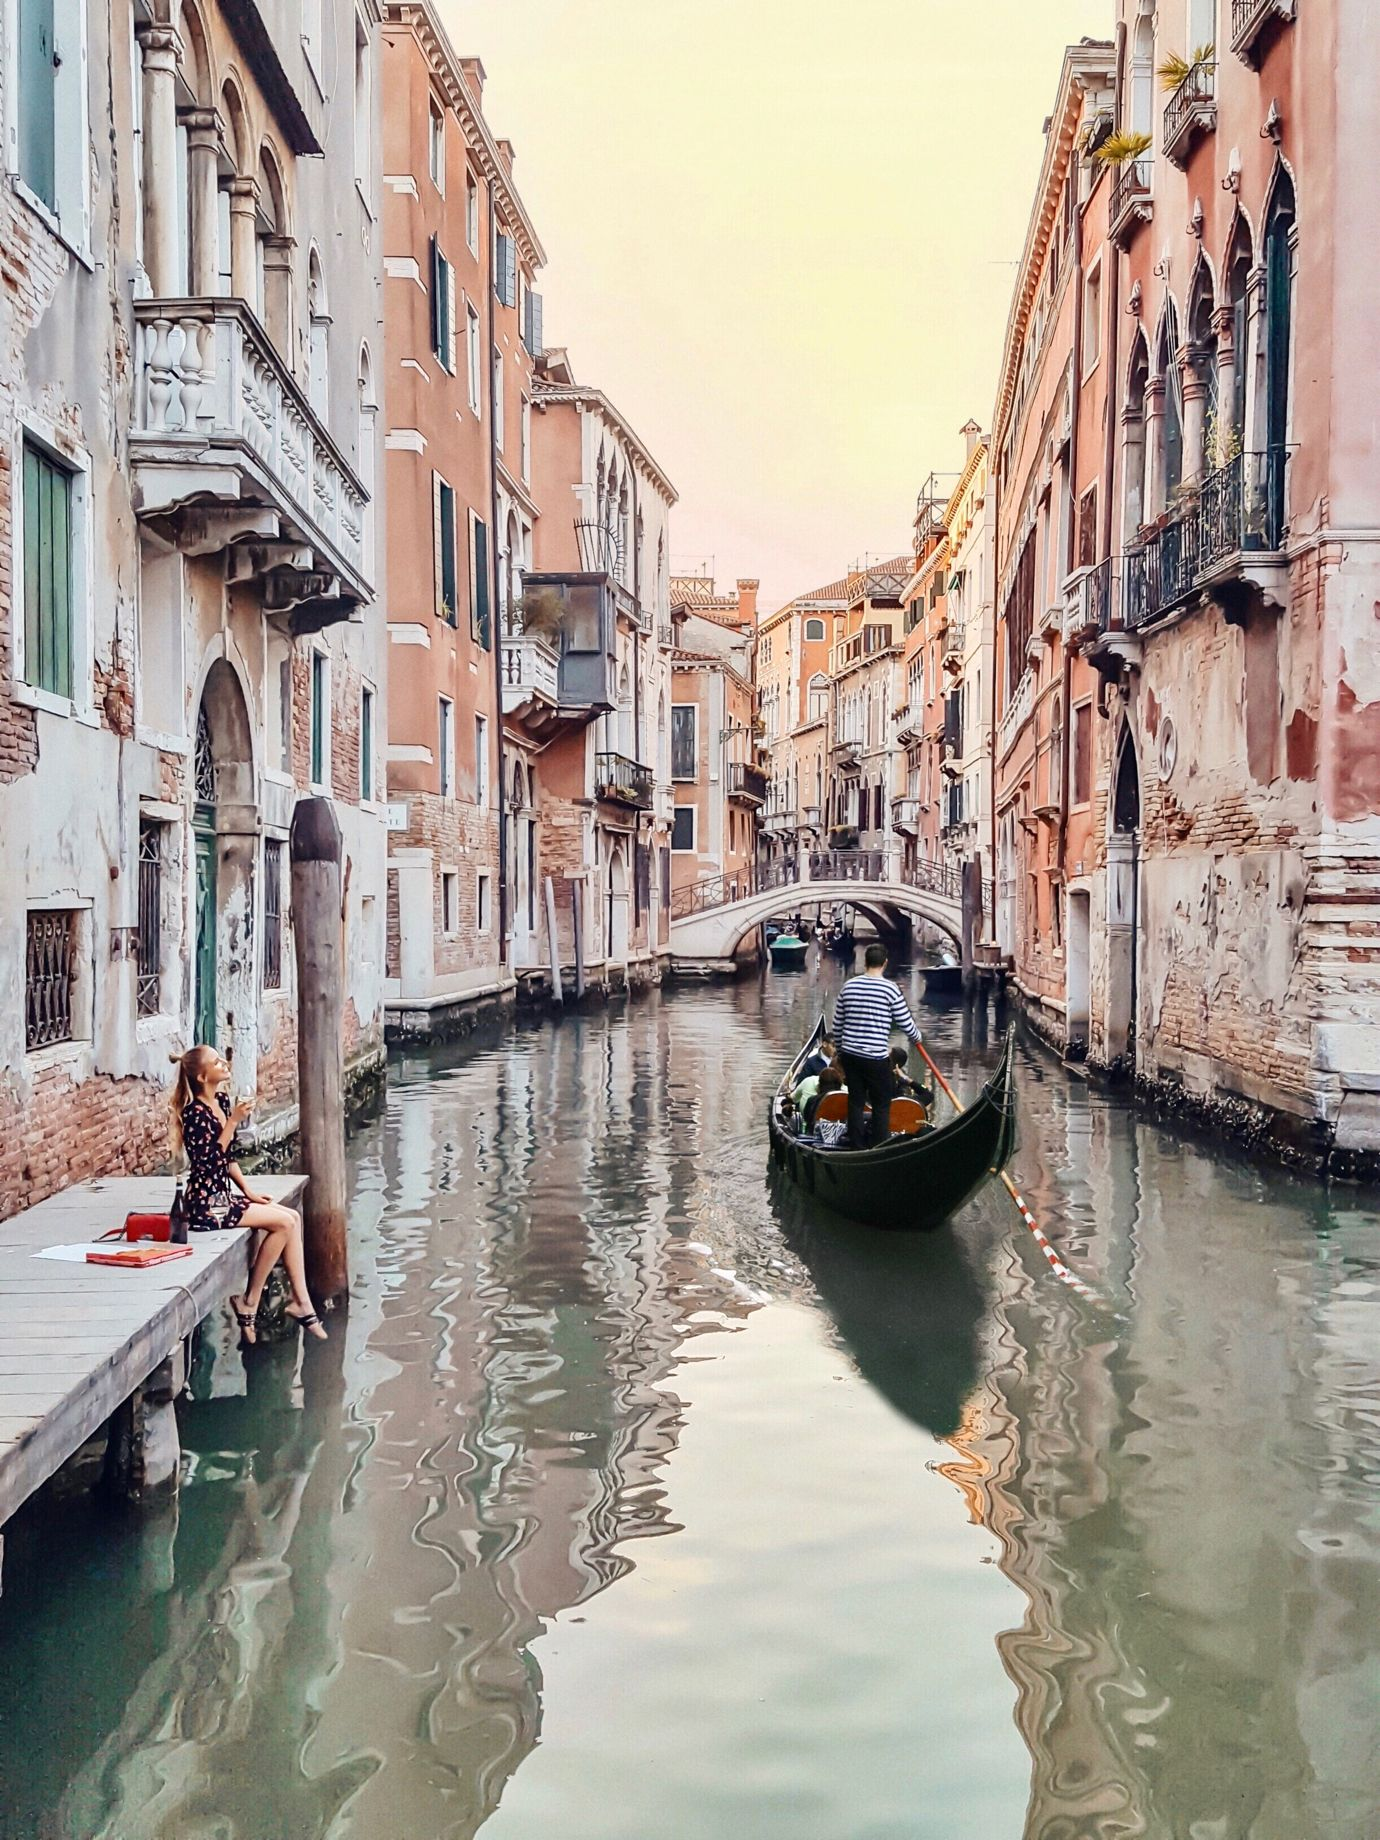 We help you make your trip to Italy, Venice memorable and interesting. We picked the most popular Venice attractions and present them to you with stunning images.